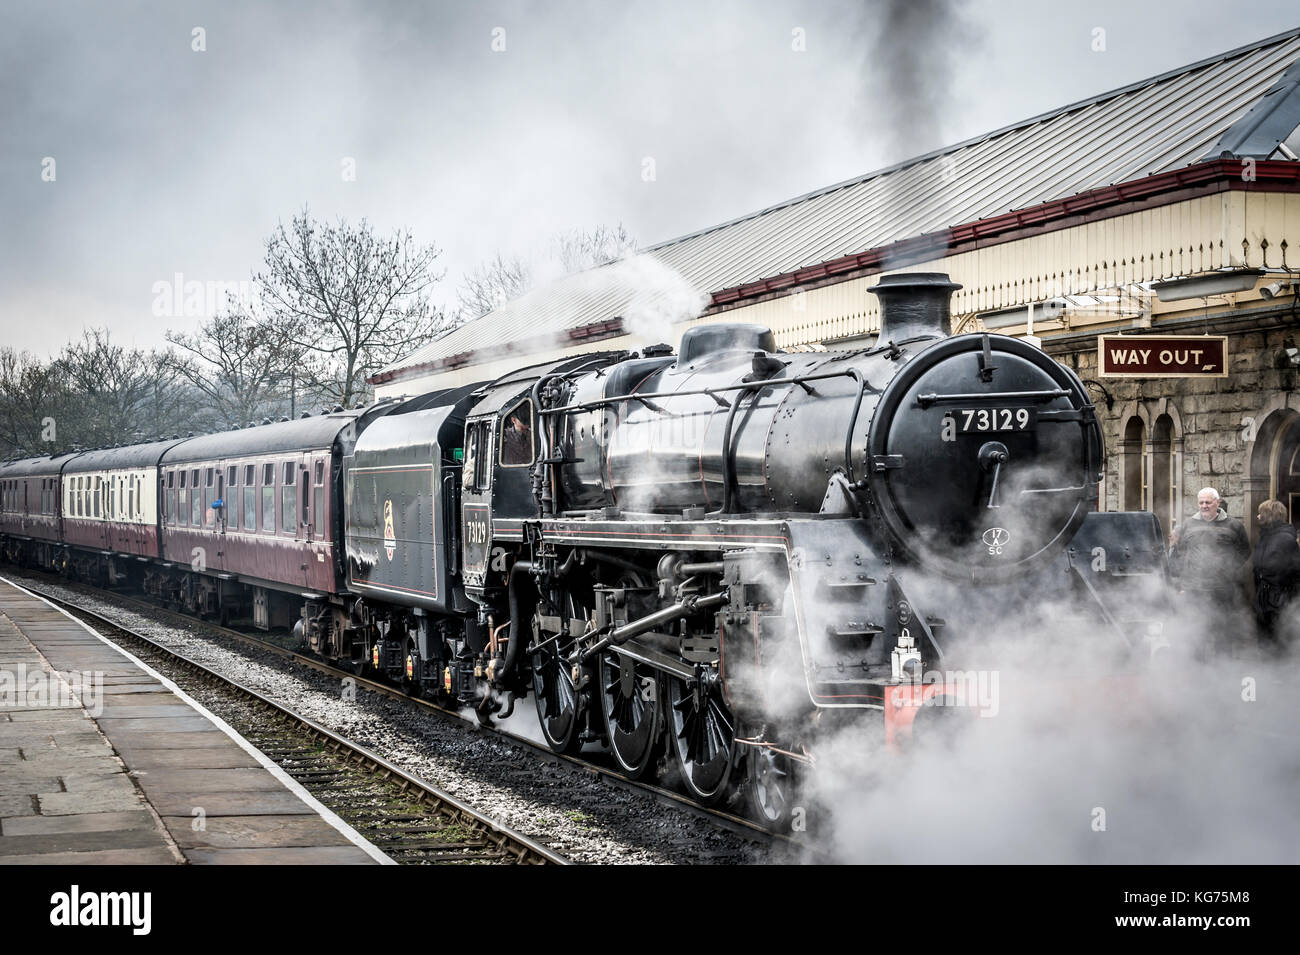 A steam locomotive pulls into the platform at Ramsbottom Station on The East Lancs Railway - Stock Image